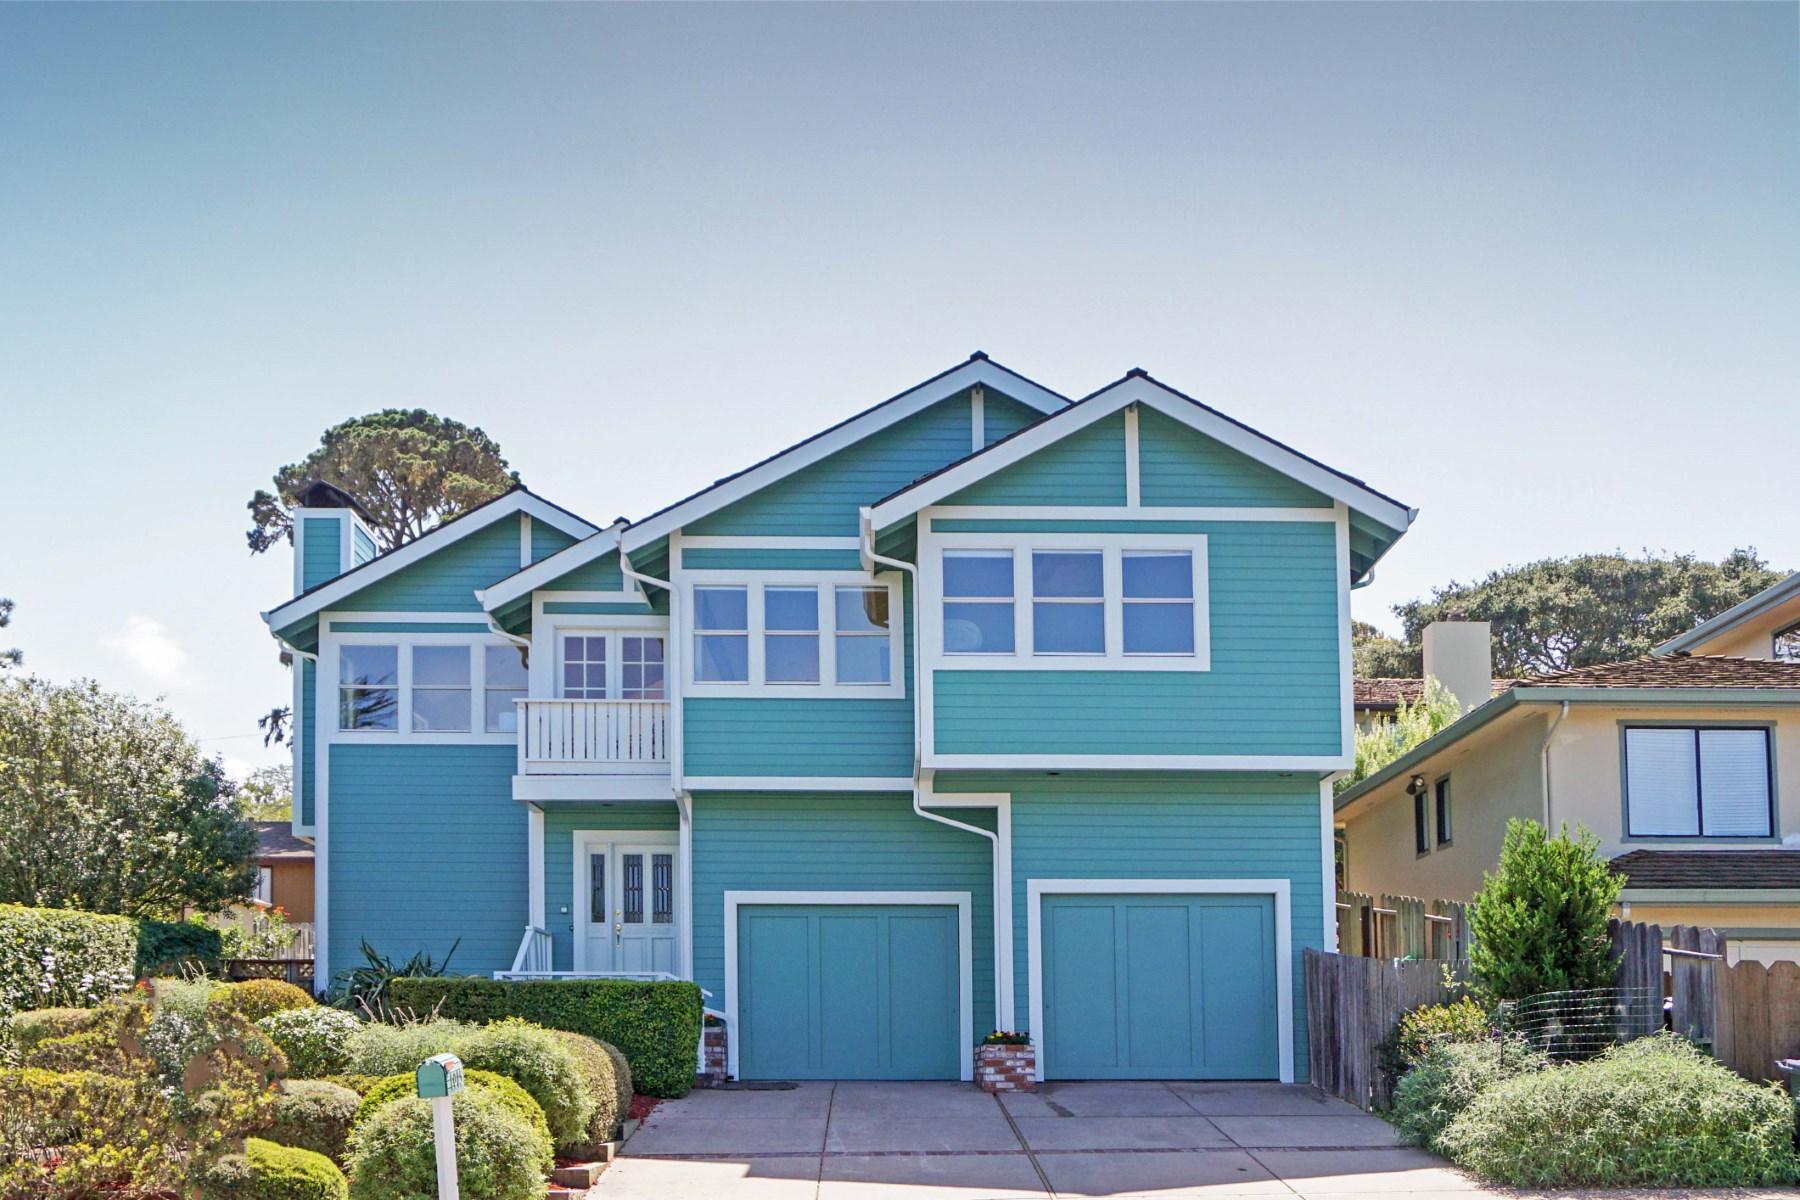 Single Family Home for Sale at Crown Jewel on Jewell Avenue 1015 Jewell Ave Pacific Grove, California, 93950 United States